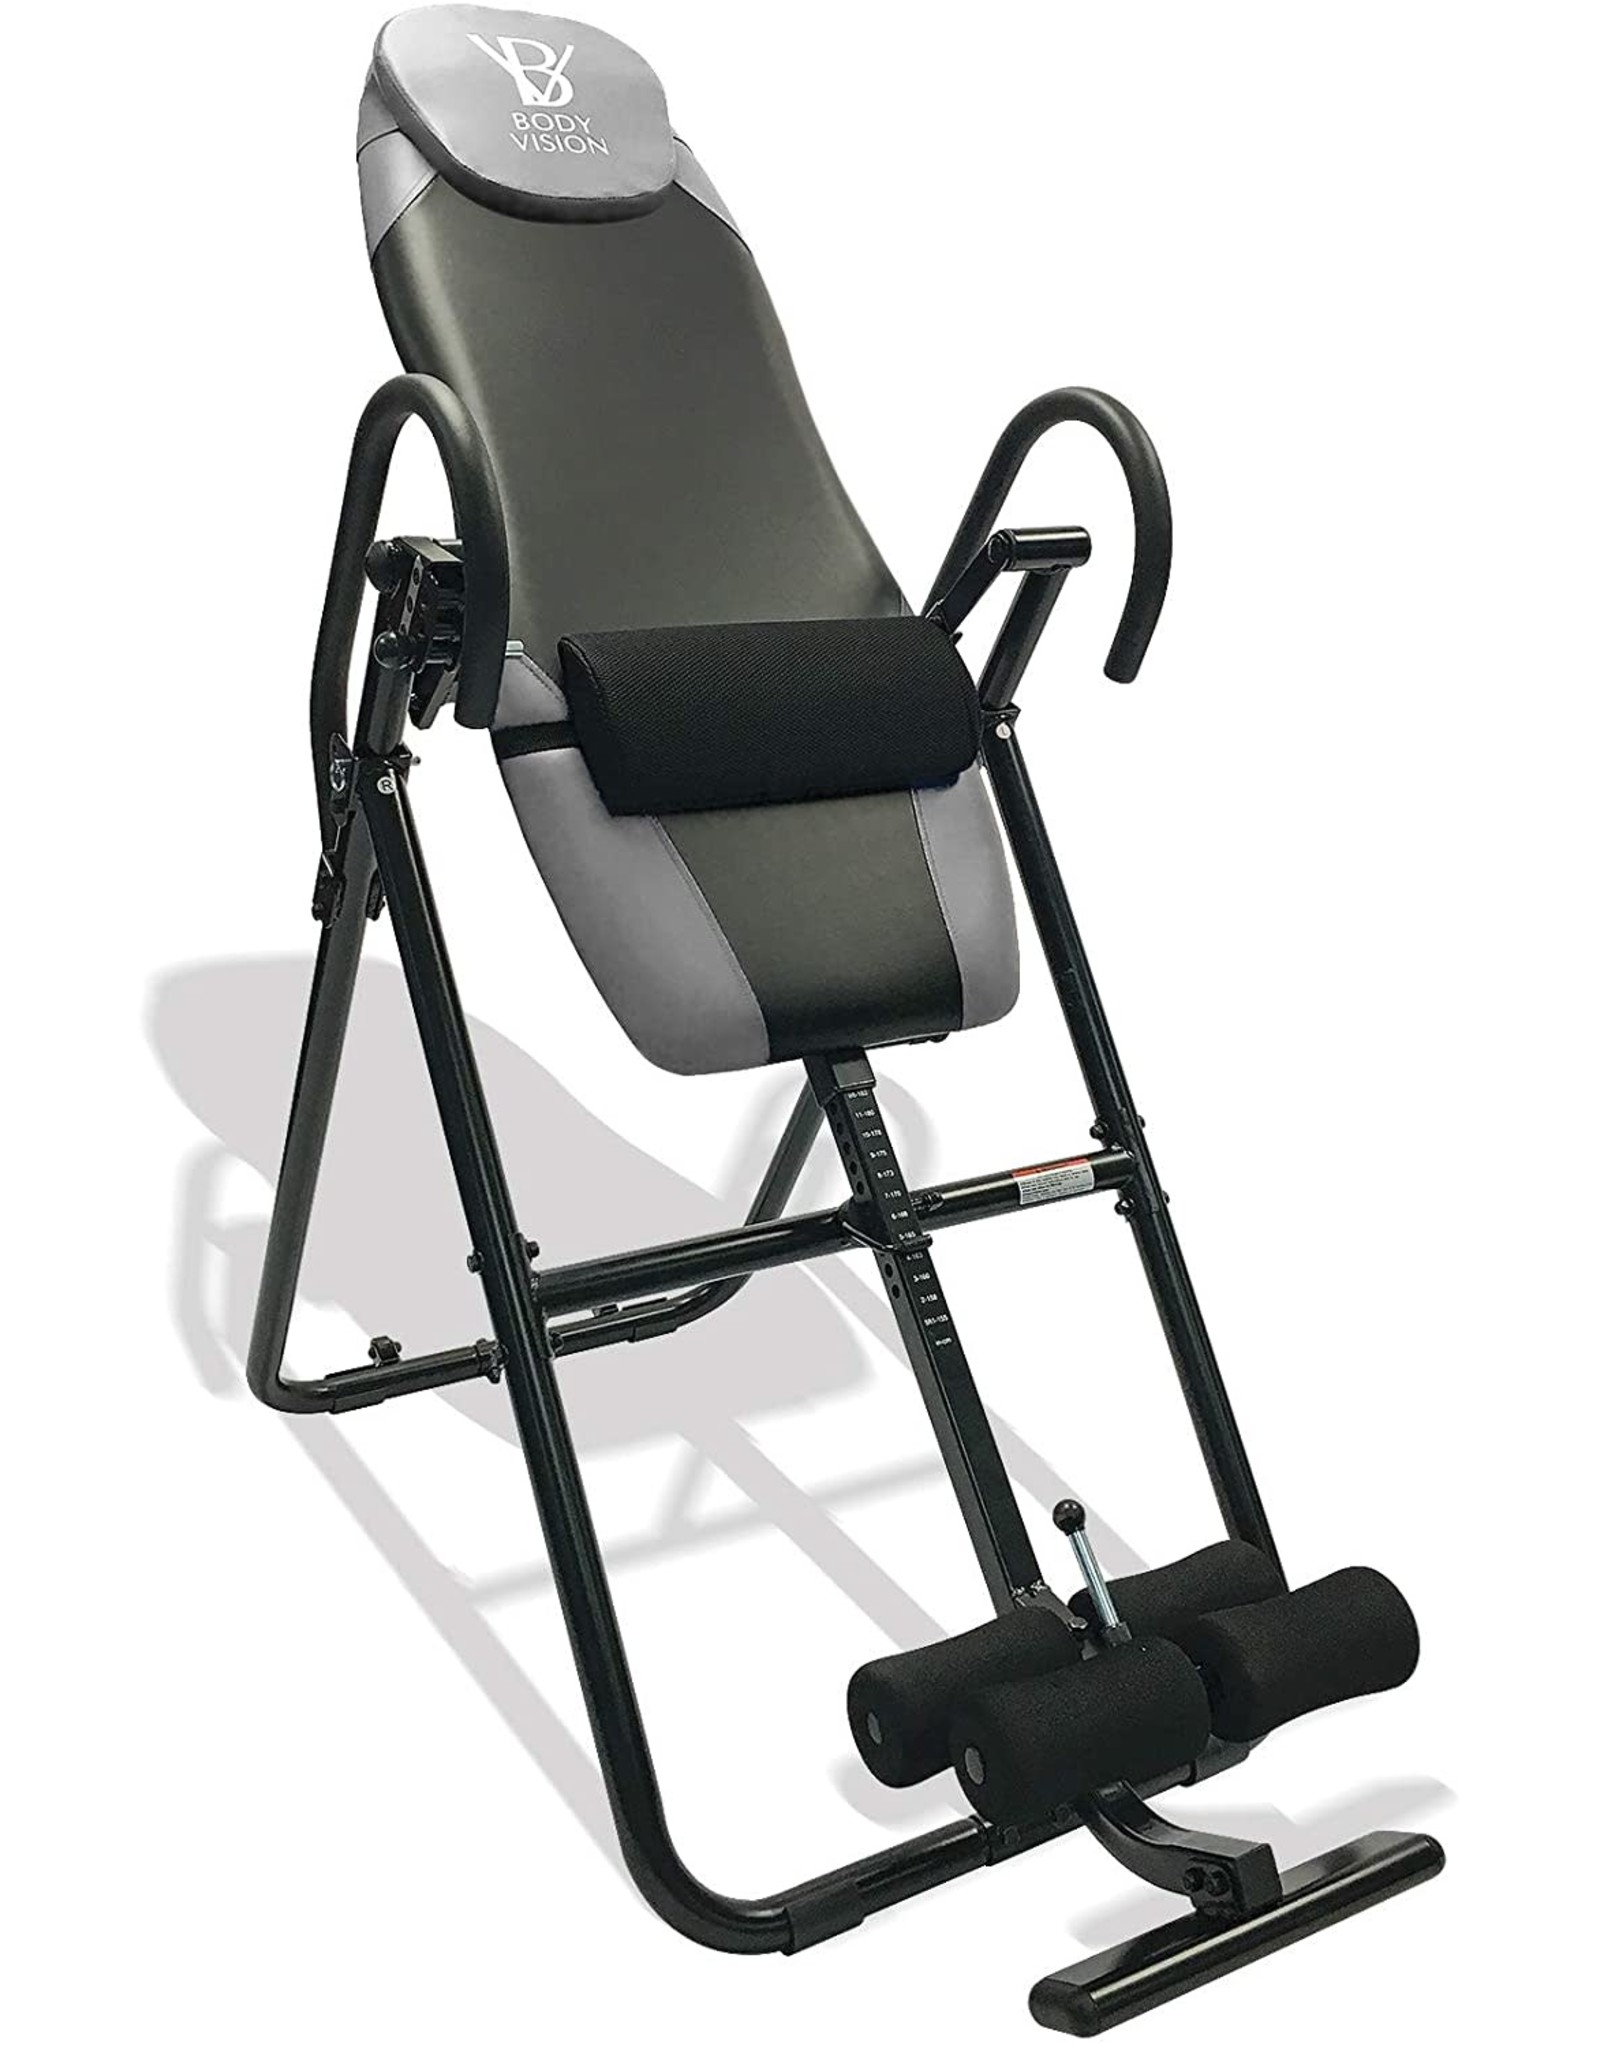 Body Vision Body Vision IT9825 Premium Inversion Table with Adjustable Head Pillow & Lumbar Support Pad- Heavy Duty up to 250 lbs